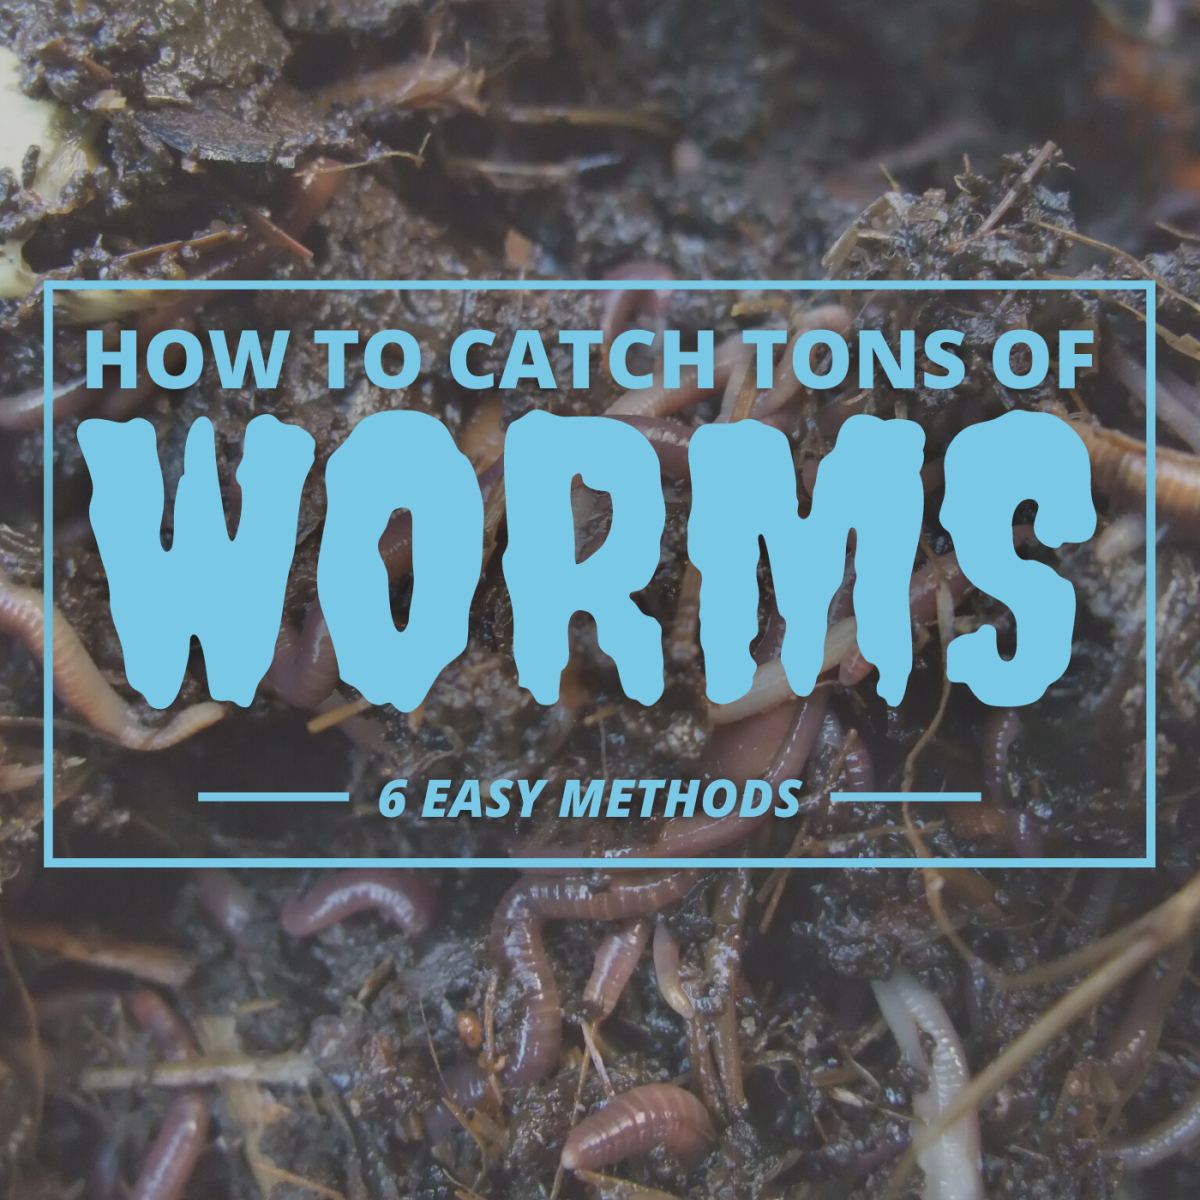 Whether you're looking to save money on fish bait or collect worms to farm or sell, the methods discussed here can help you get started.